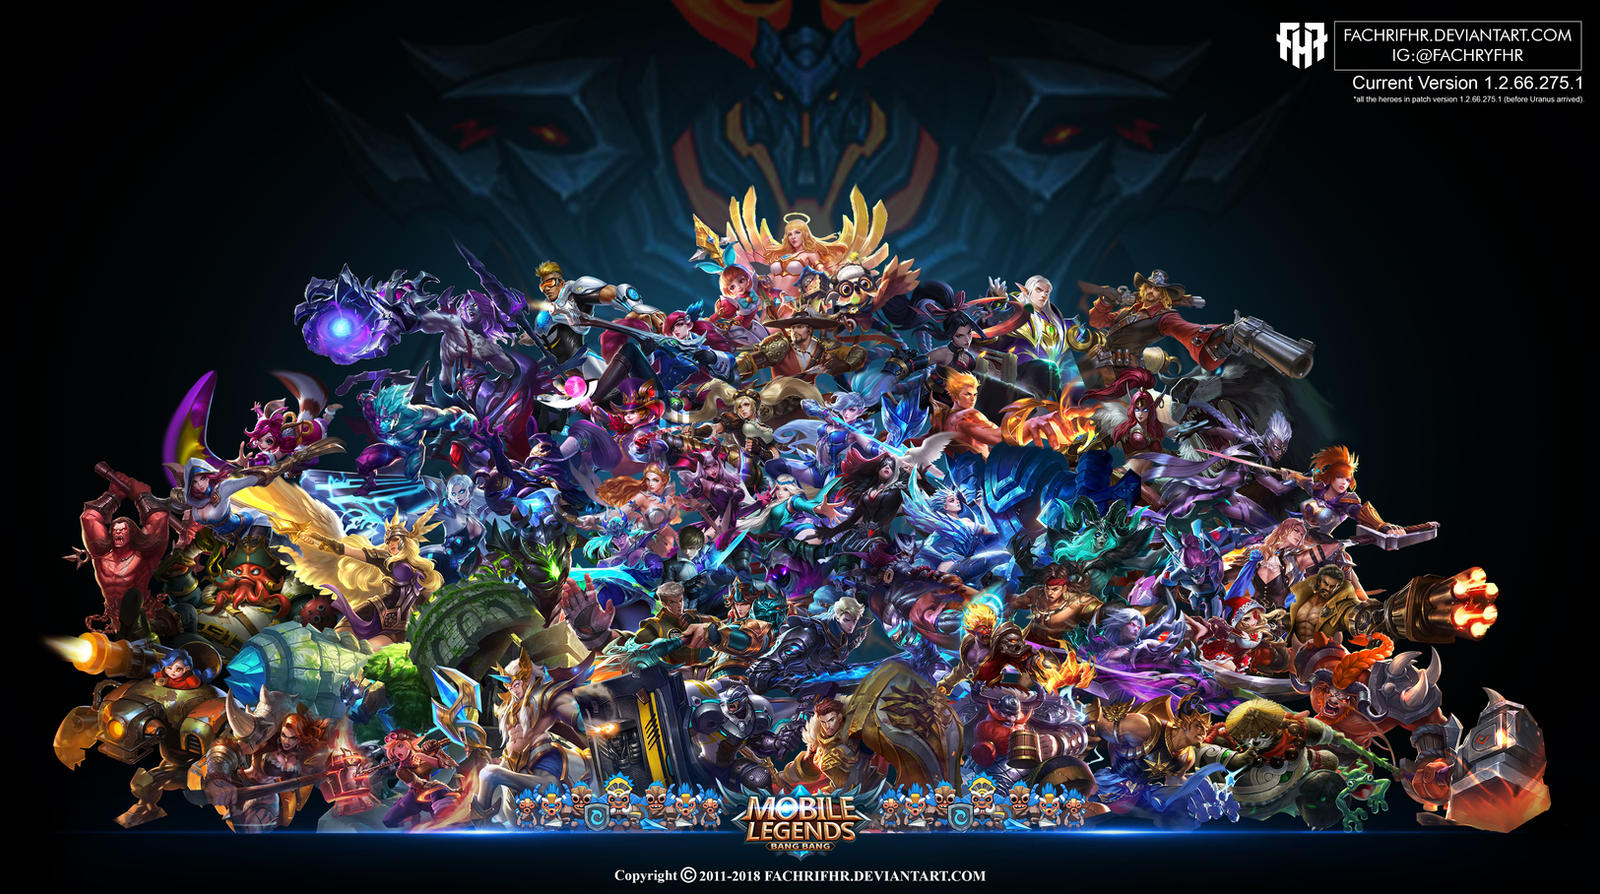 Download 500+ Wallpaper Mobile Legend  Terbaik